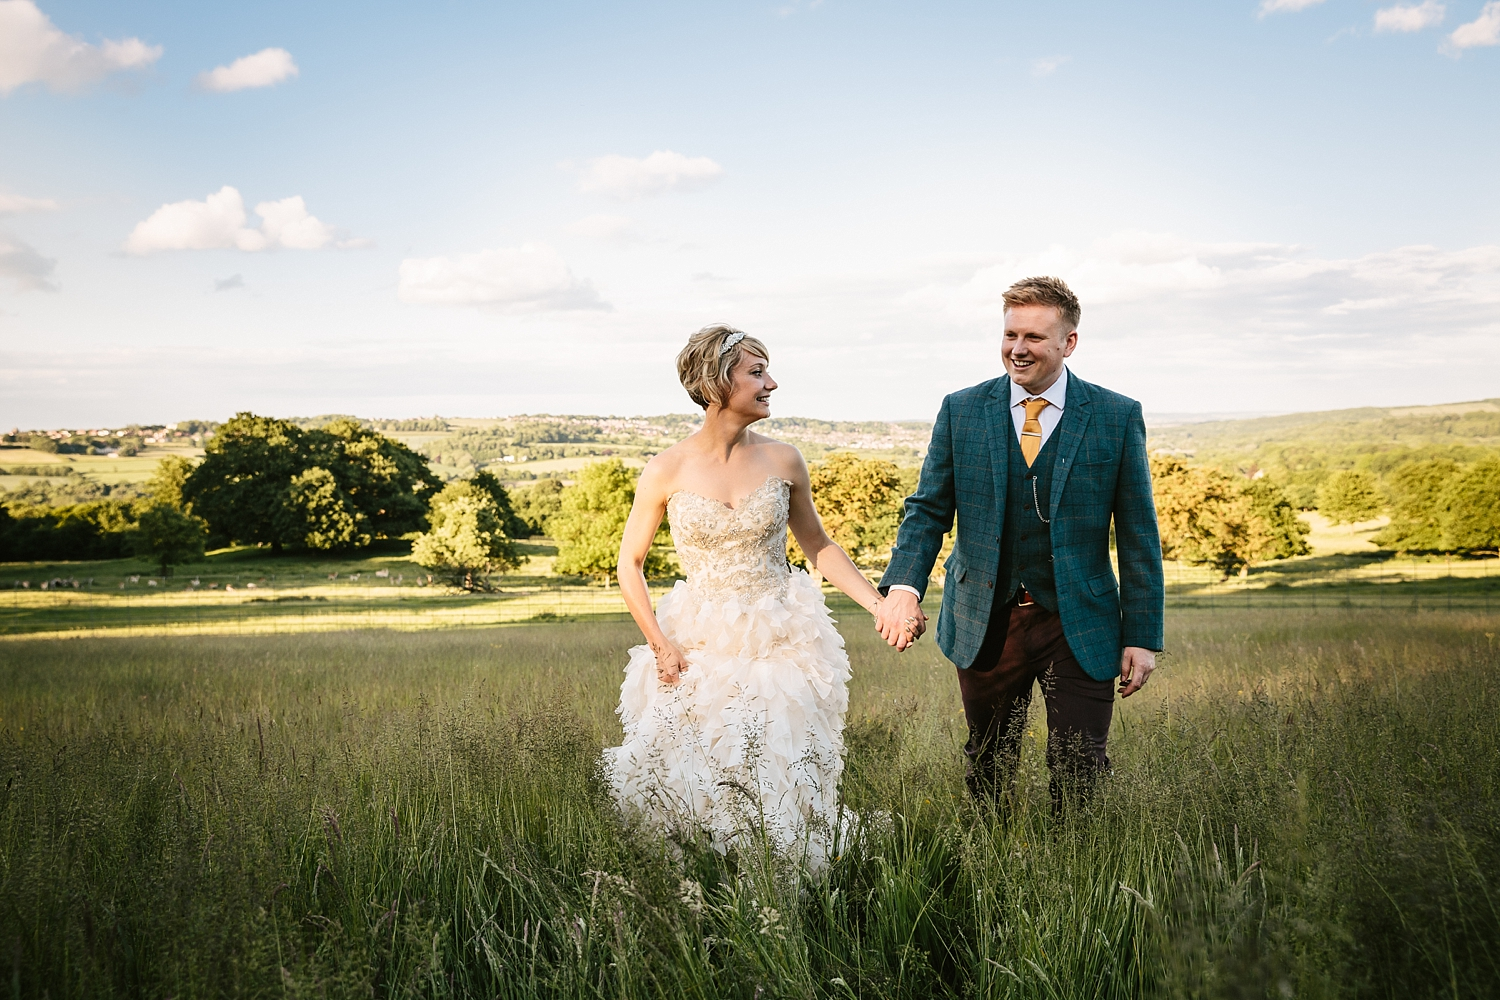 Natlie-Matthew-yorkshire-natural-relaxed-fun-documentary-reportage-candid-wedding-photography-photographer-Derby-Nottingham-Derbyshire-Nottinghamshire-Leicestershire-Lincolnshire-East-Midlands-85.jpg